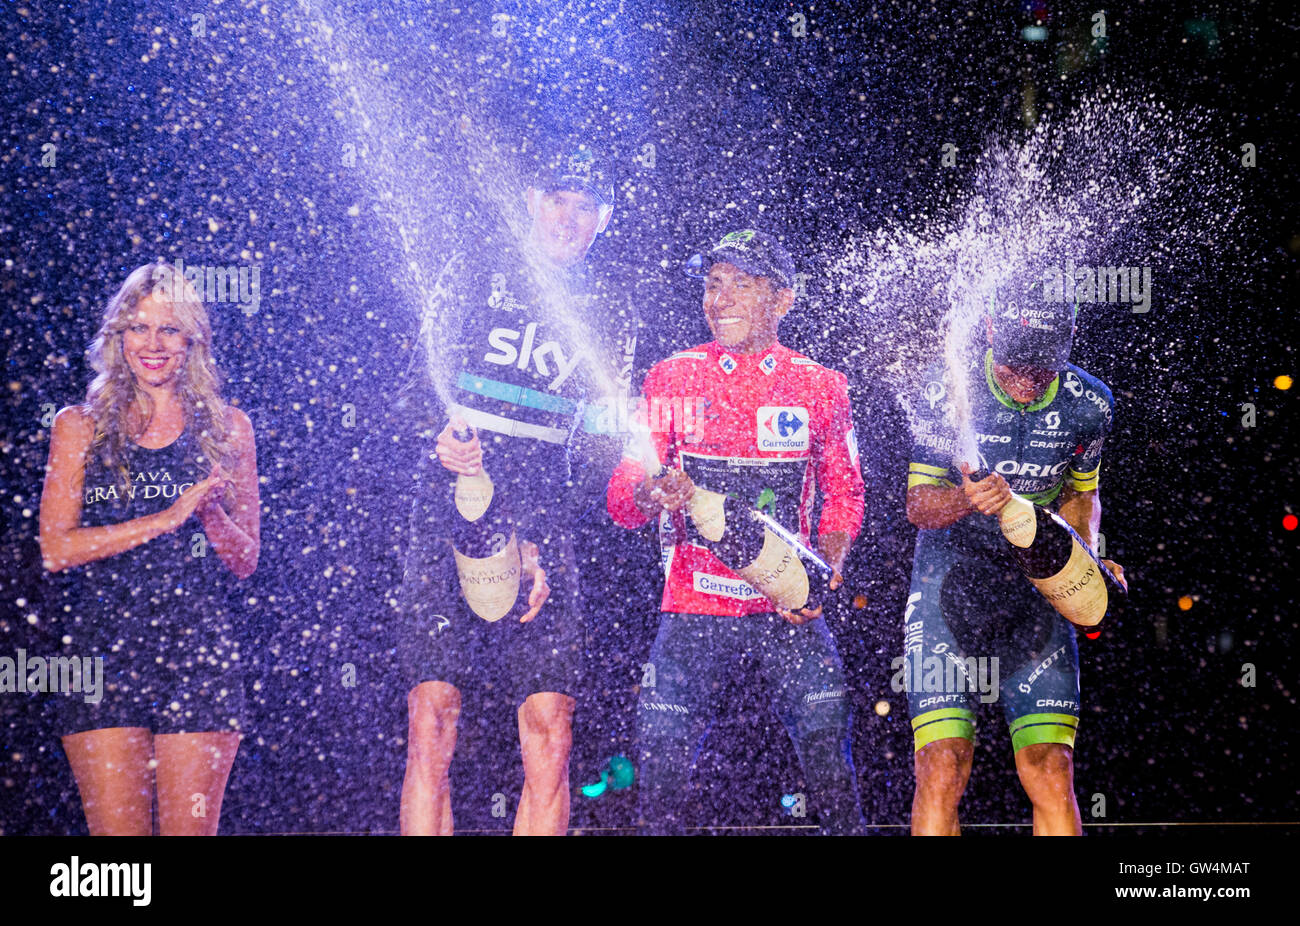 Madrid, Spain. 11th September, 2016. Chris Froome (2nd), Nairo Quintana (1st) and Esteban Chaves (3rd) celebrate - Stock Image